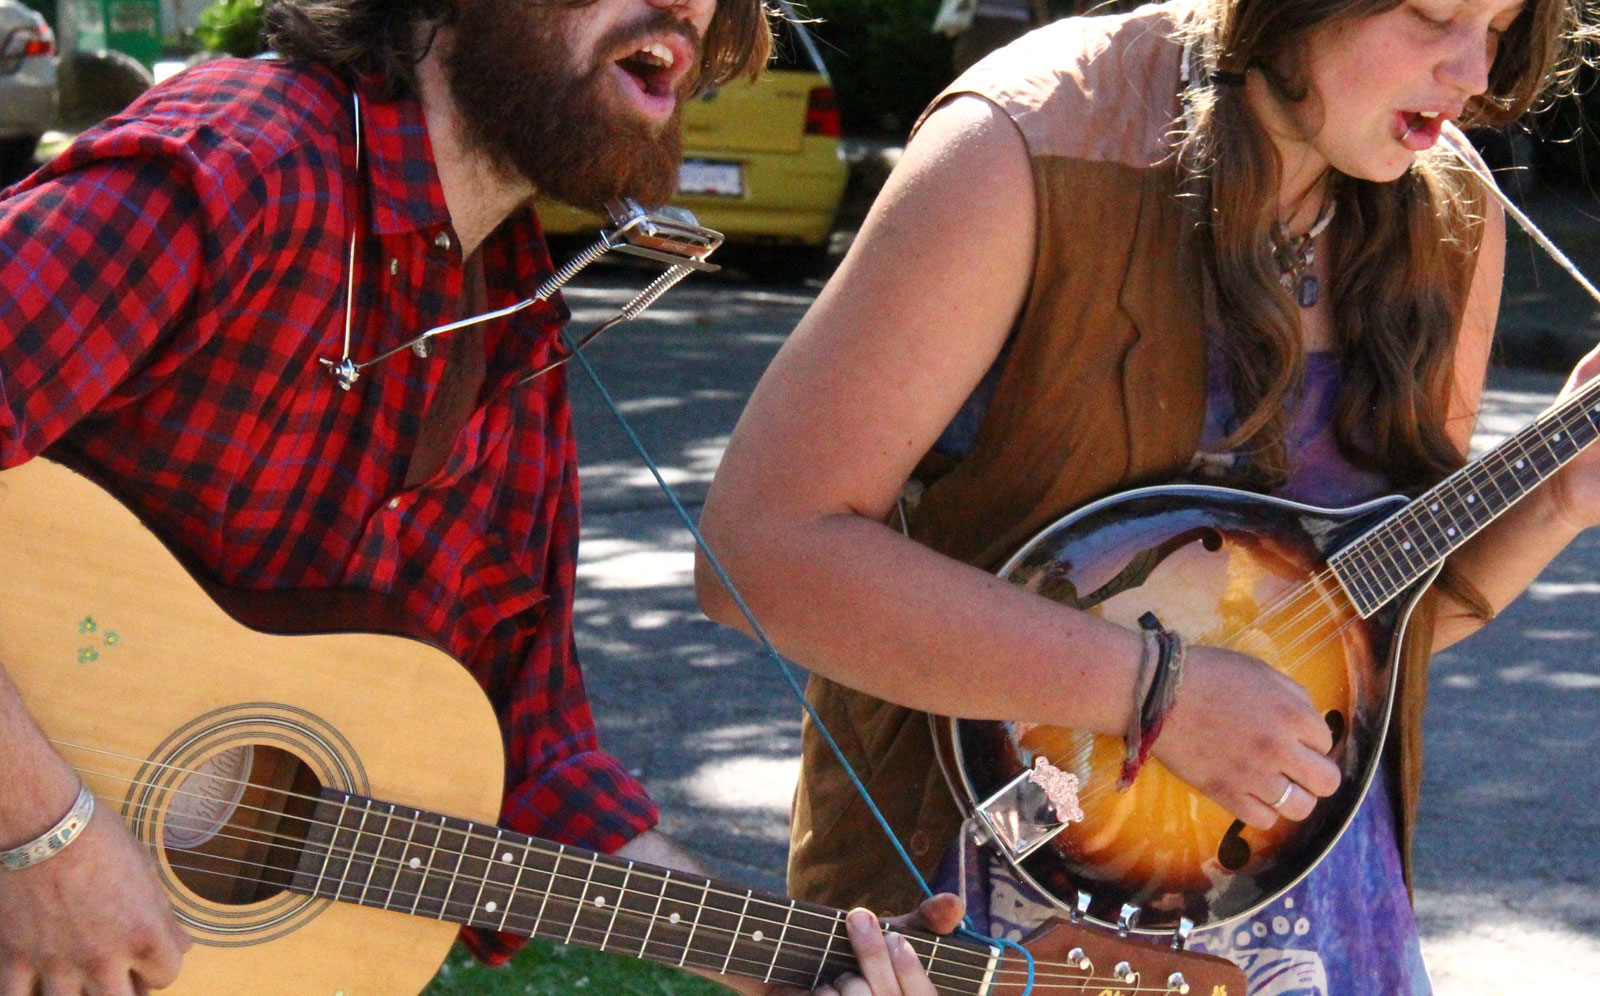 On Making Life Harder for Buskers and Calling 911 Like It's Customer Service